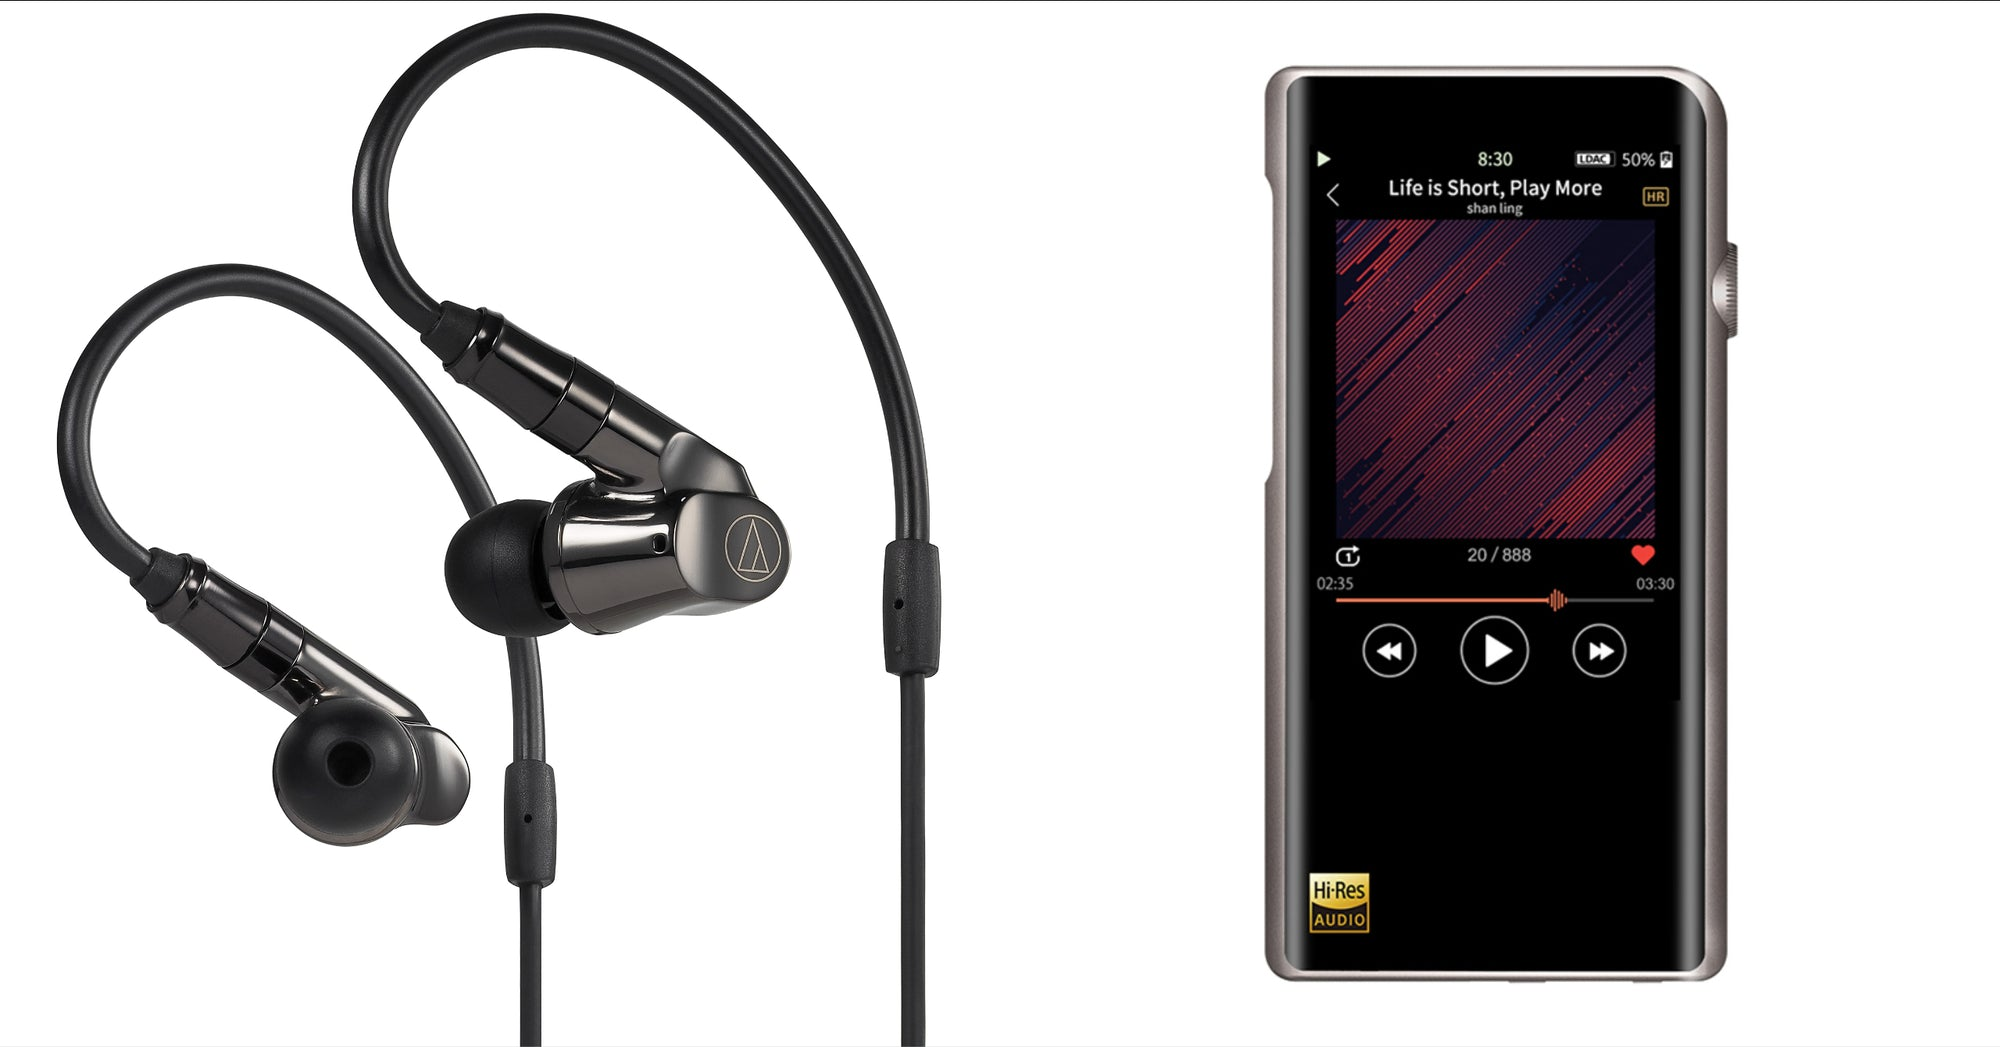 [JABEN COMBO] Audio Technica ATH-IEX1 In-Ear Headphone and Shanling M5s Digital Audio Player